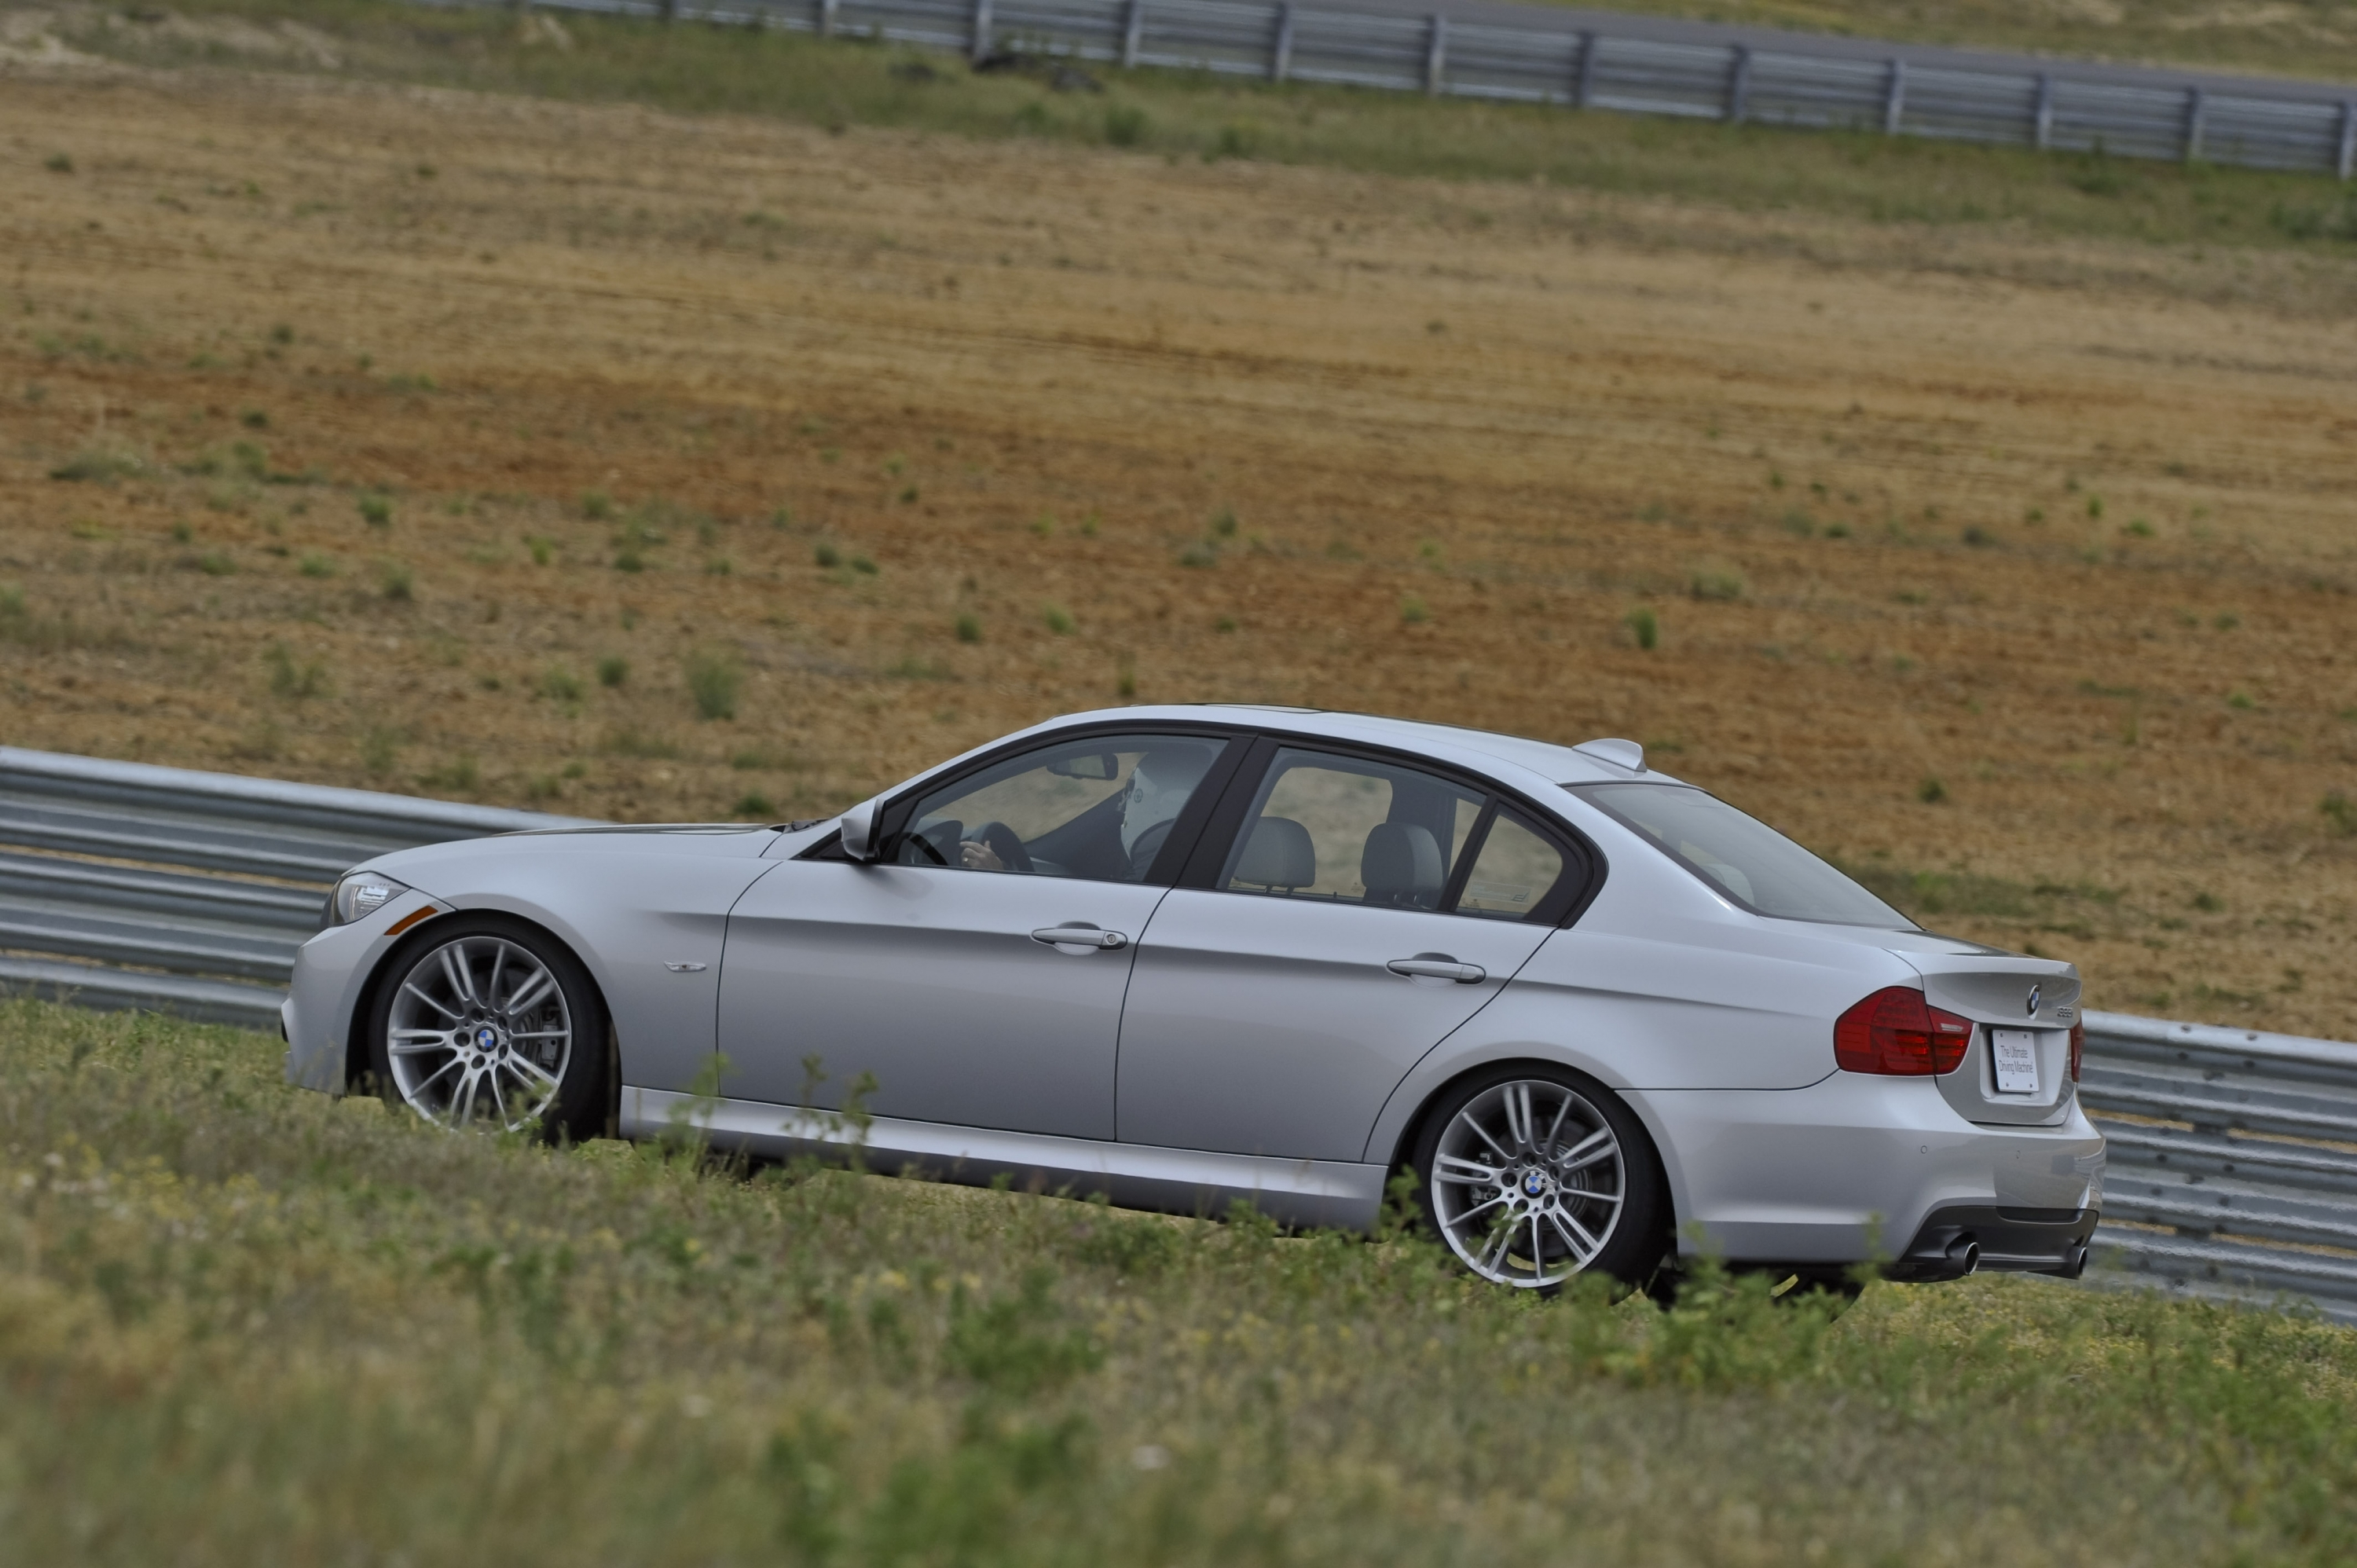 Bmw Recalls 156137 Vehicles To Fix Variable Camshaft Timing Issue